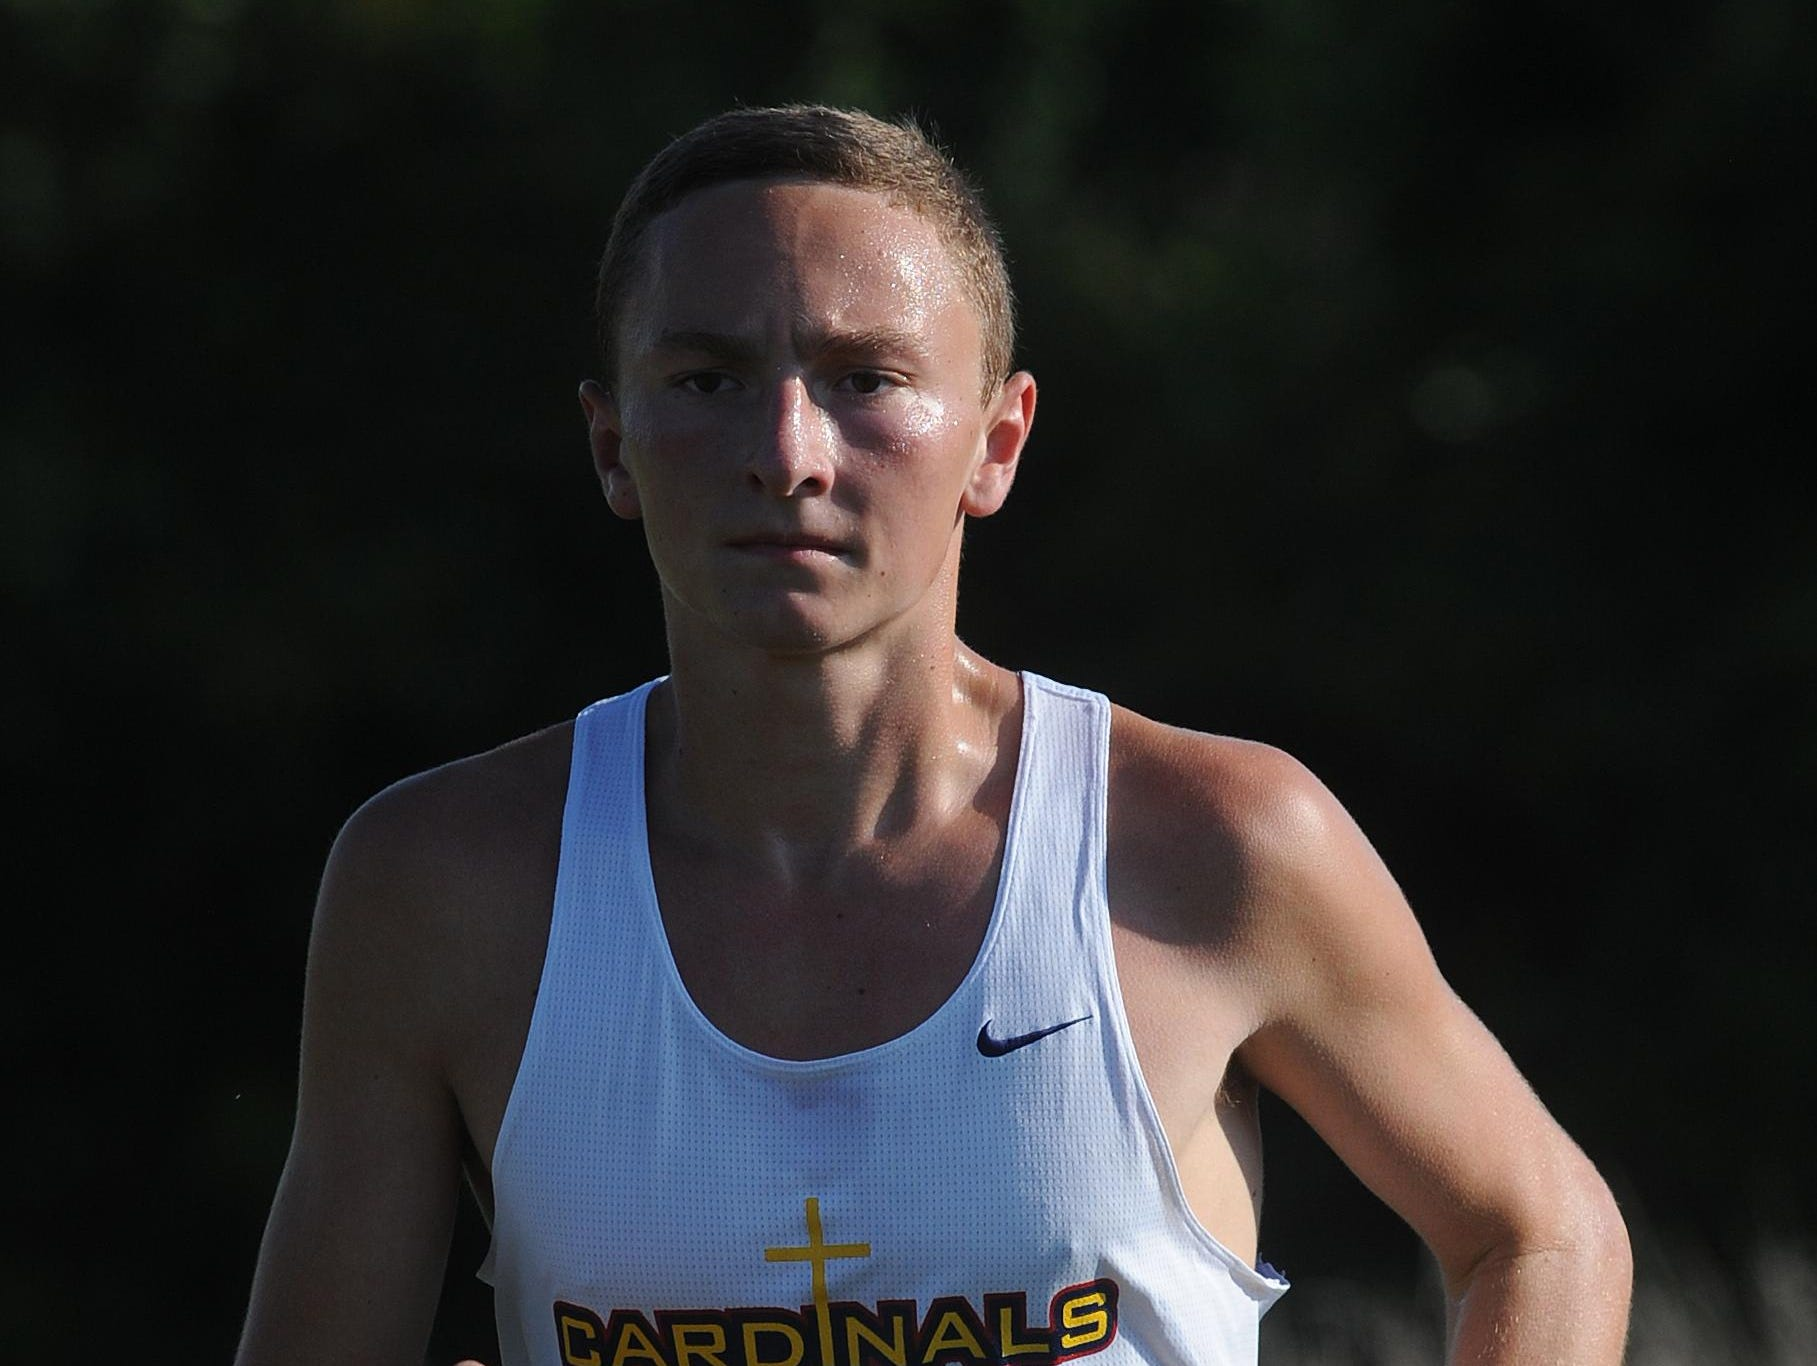 Seton's Jacob Stamm leads the Wayne County Cross Country race at Indiana University East during the 2013 cross country season.